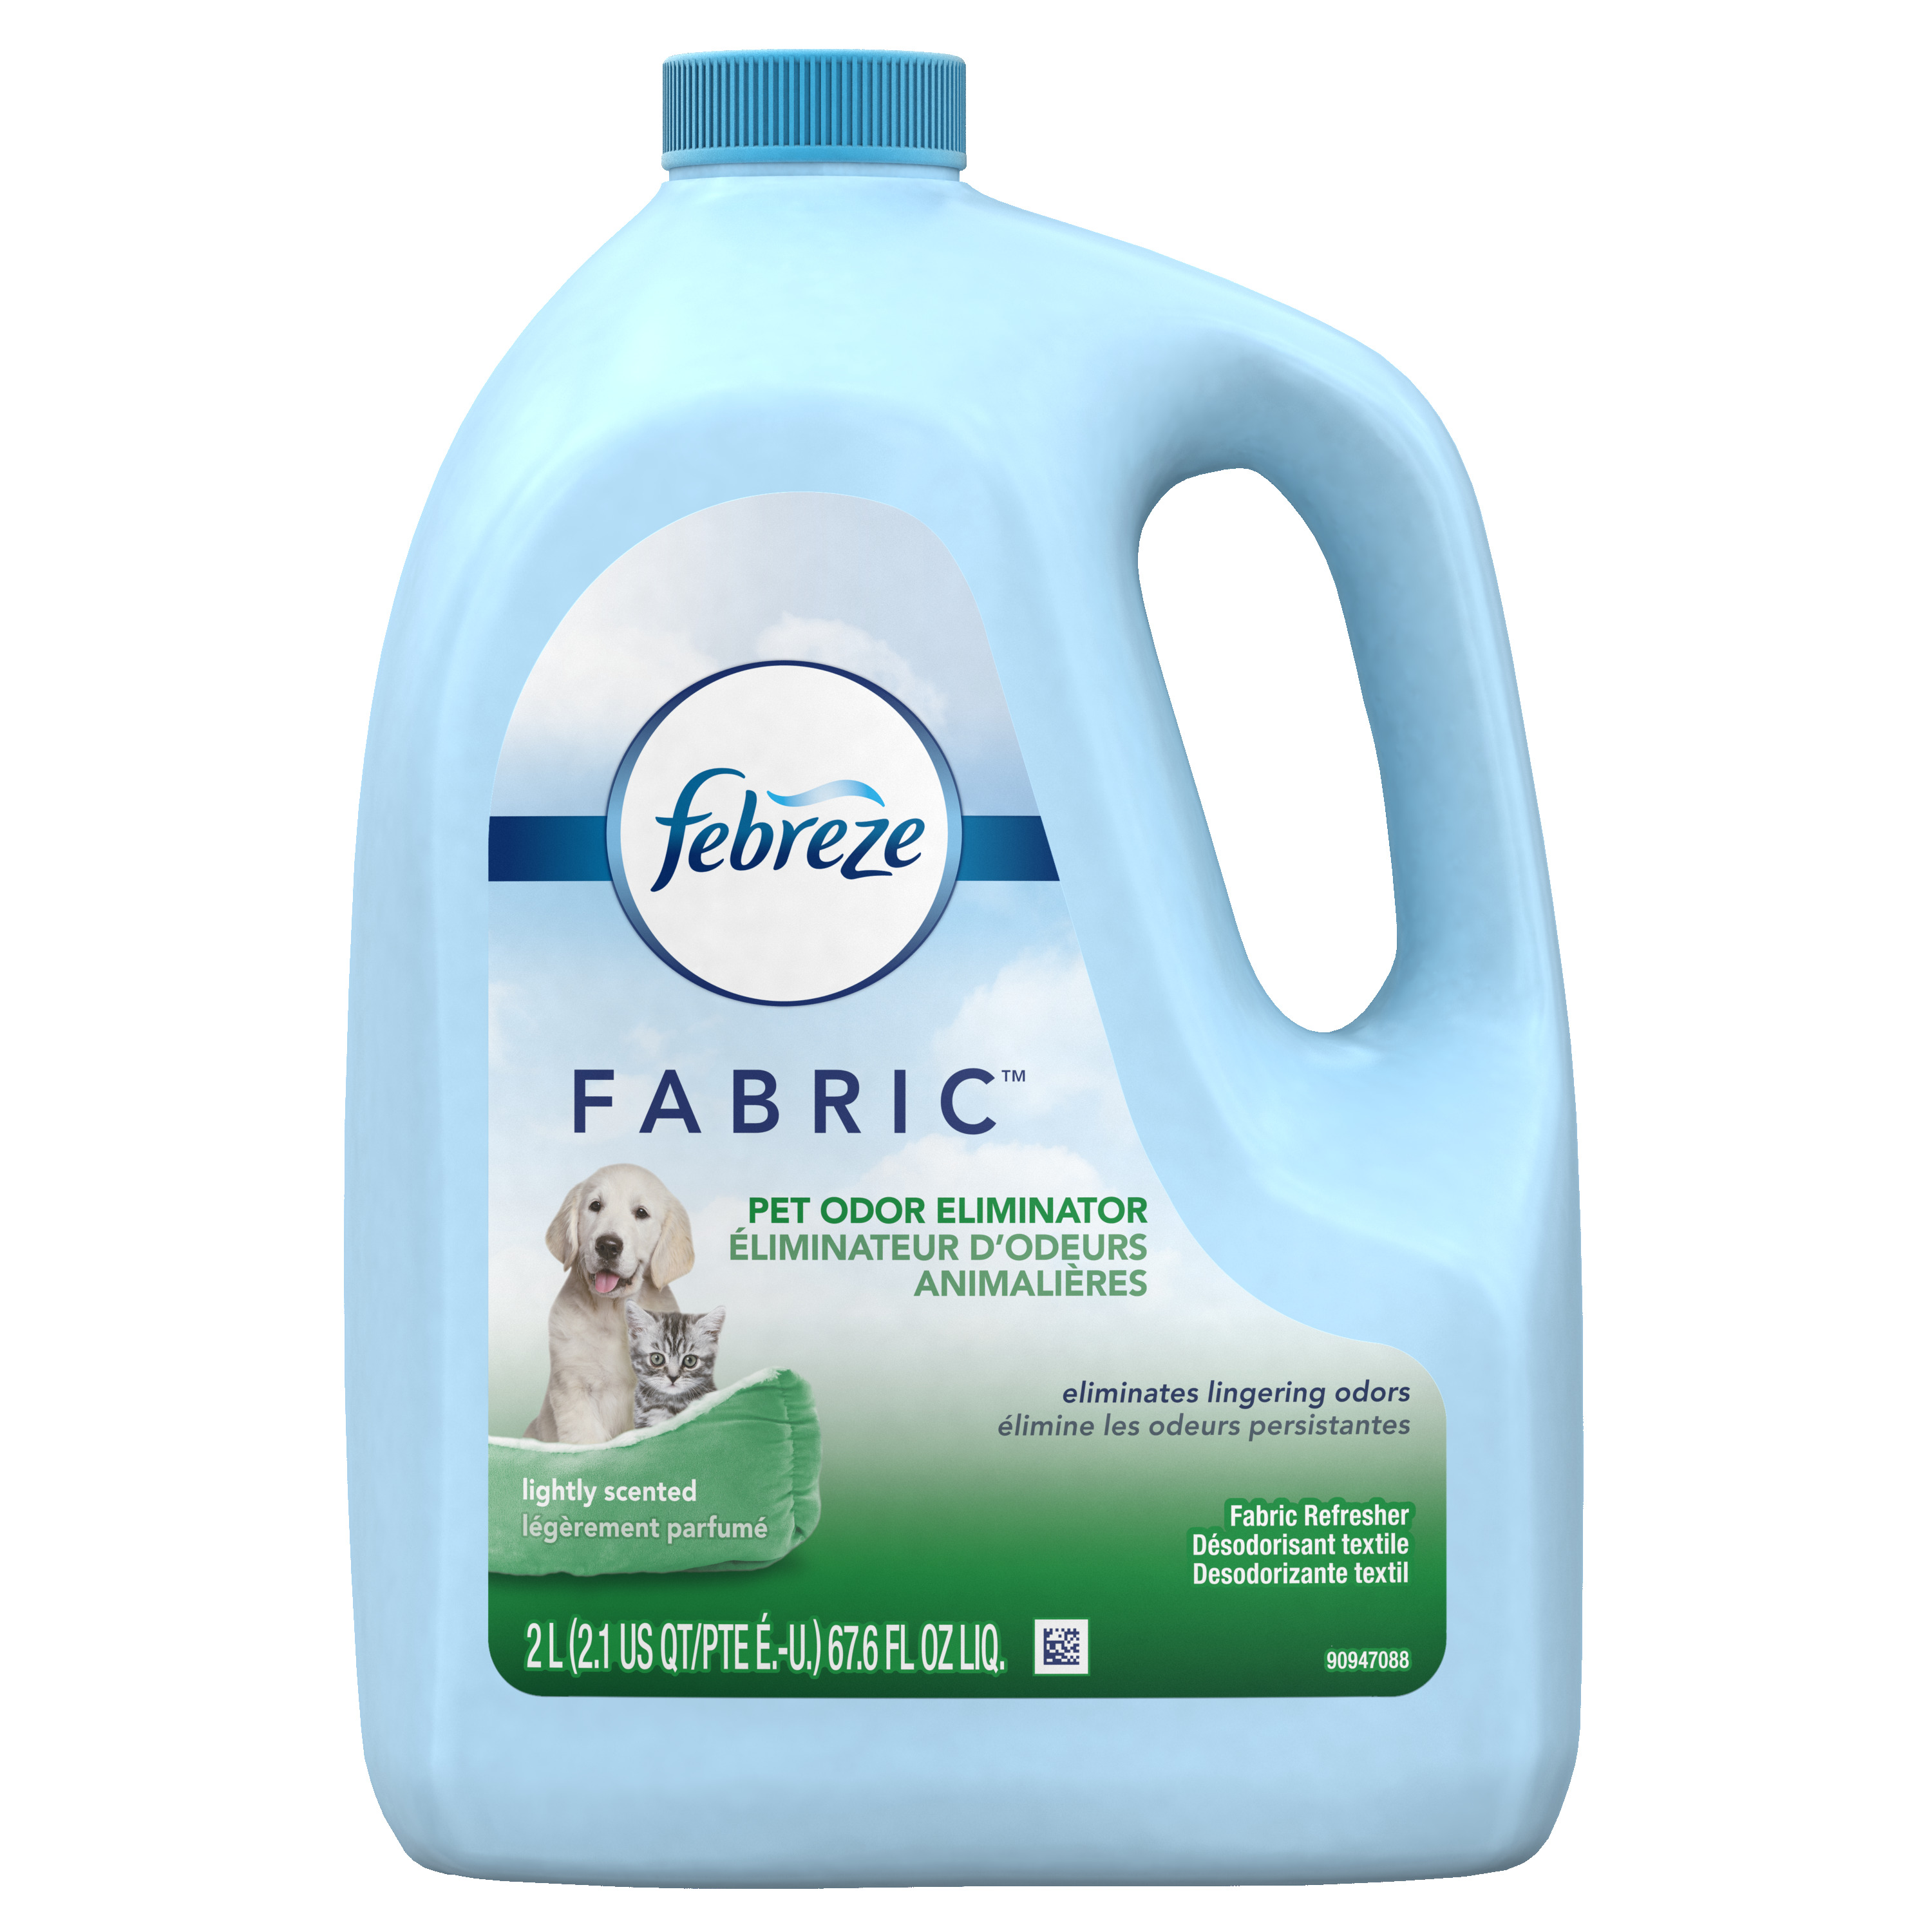 Febreze FABRIC Refresher, Pet Odor Eliminator Refill, 1 Count, 67.62 oz